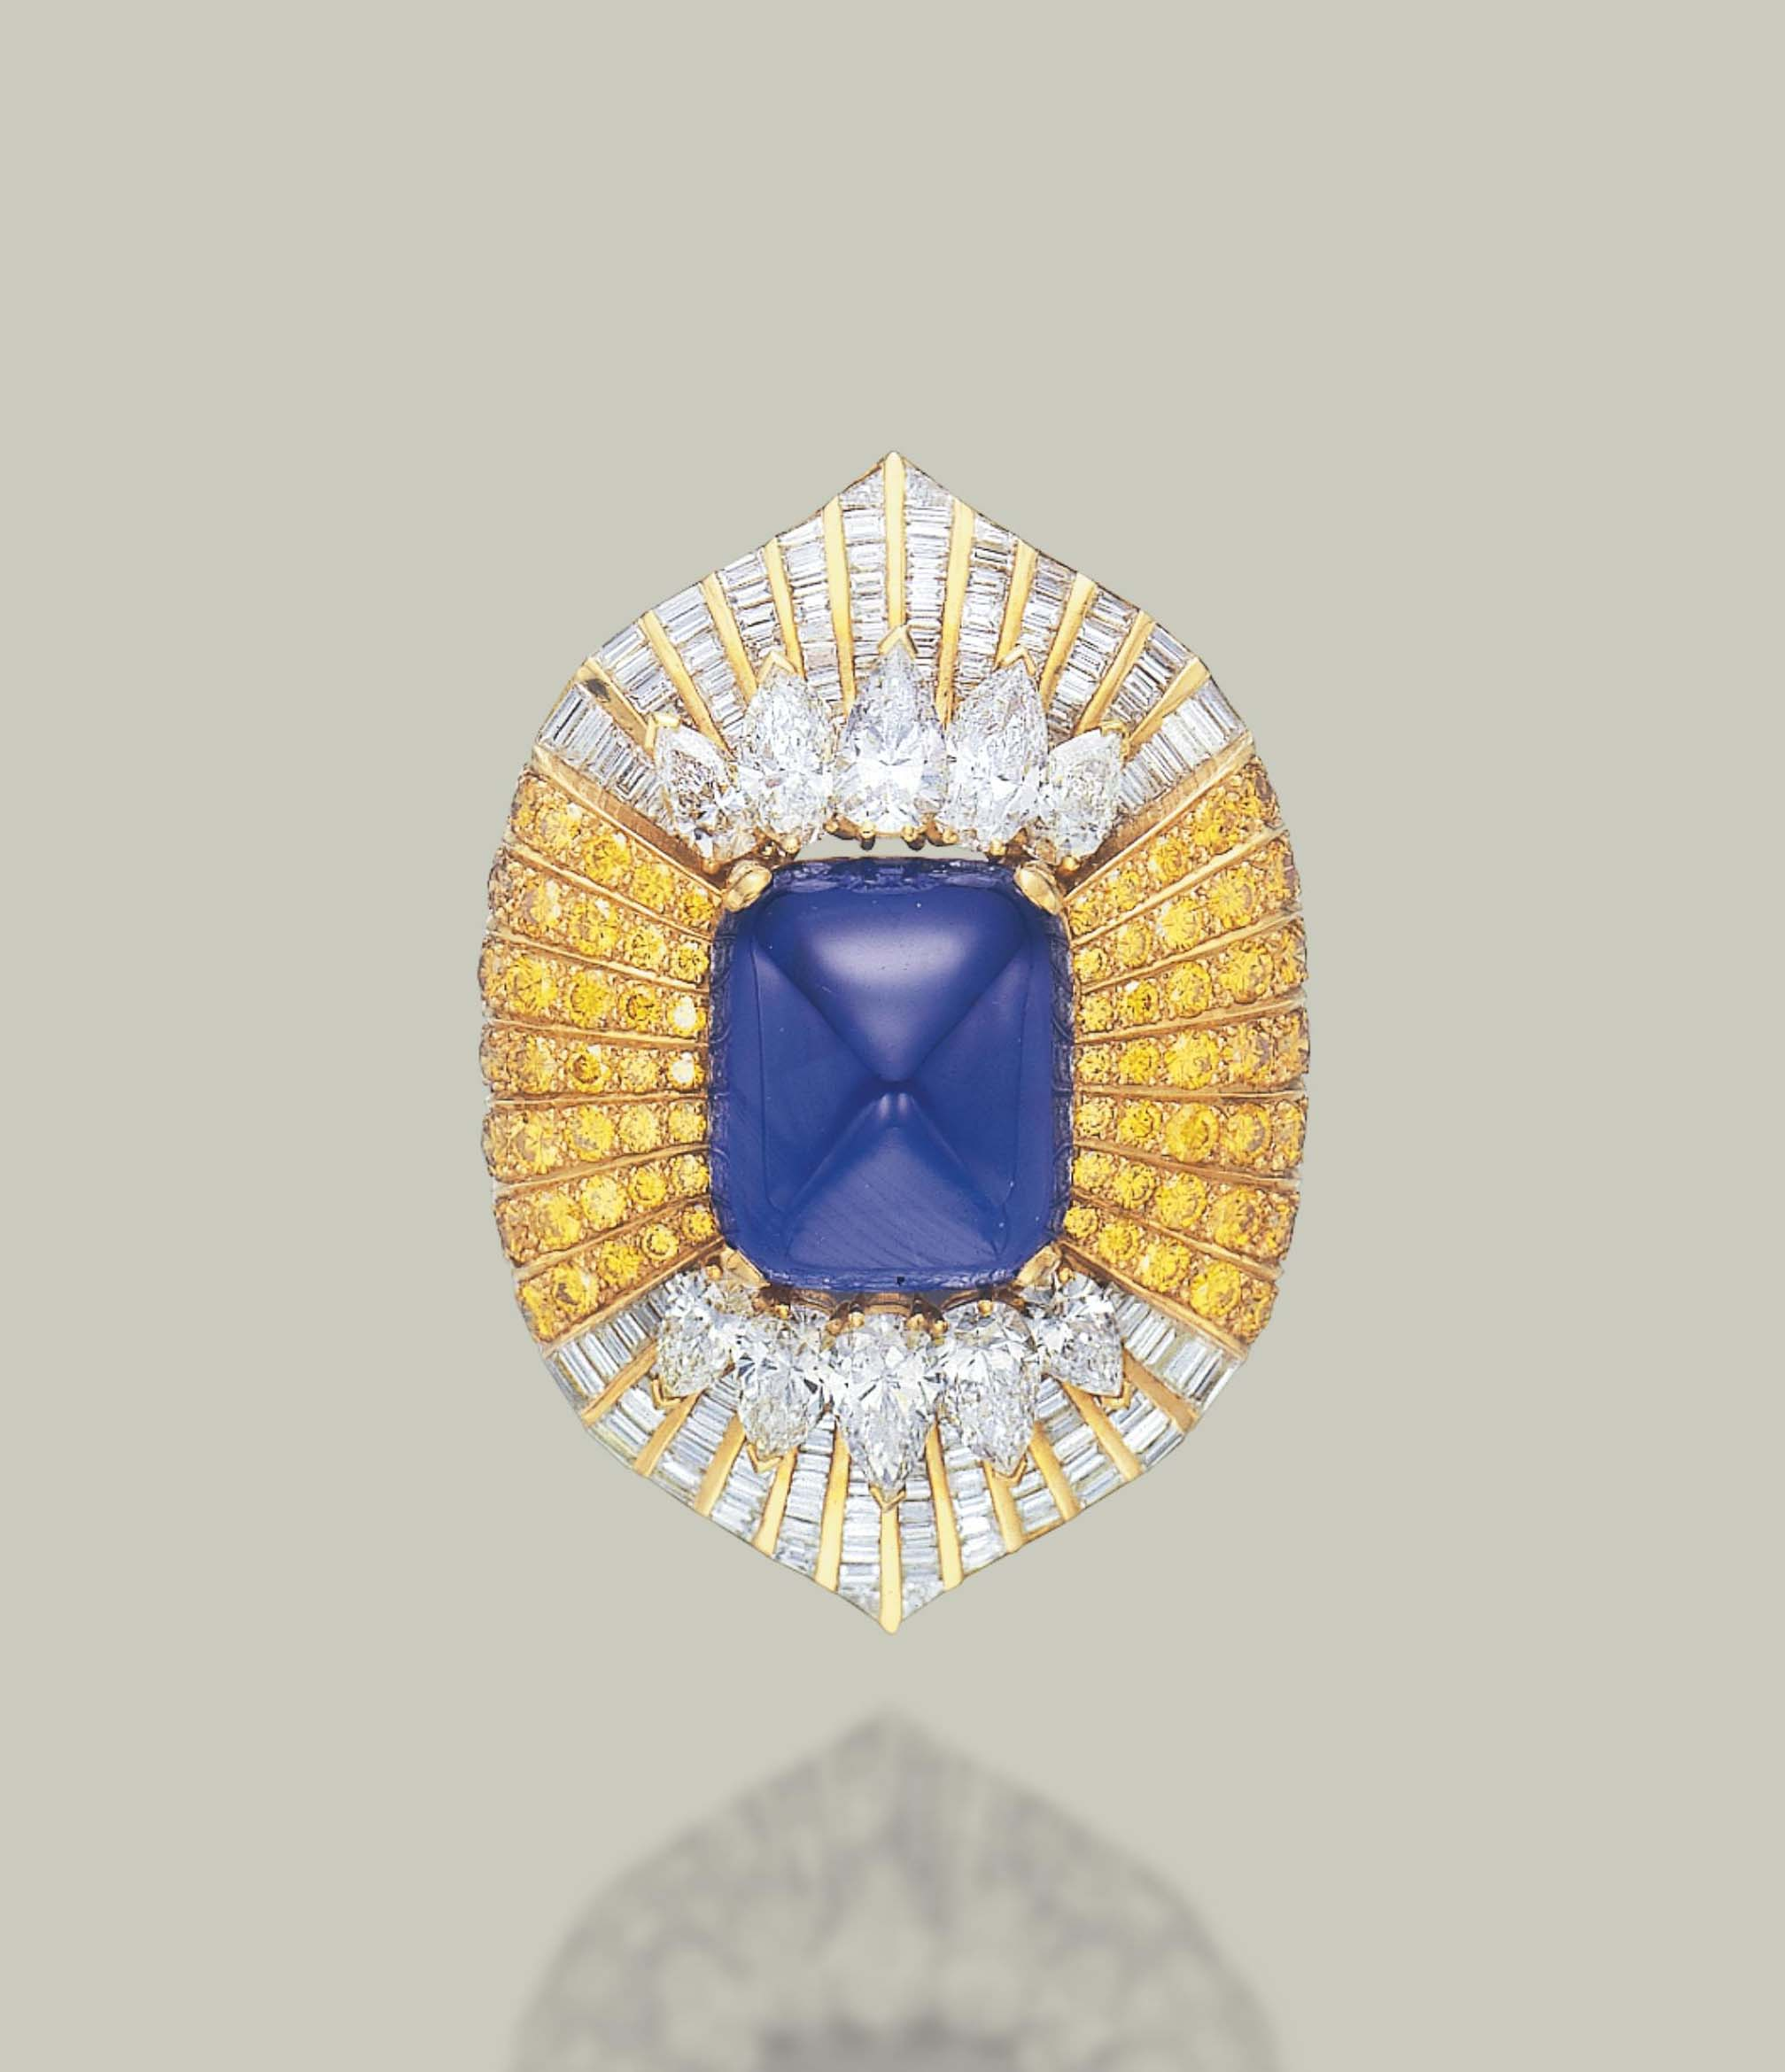 A SAPPHIRE, DIAMOND AND COLOURED DIAMOND BROOCH, BY DAVID MORRIS